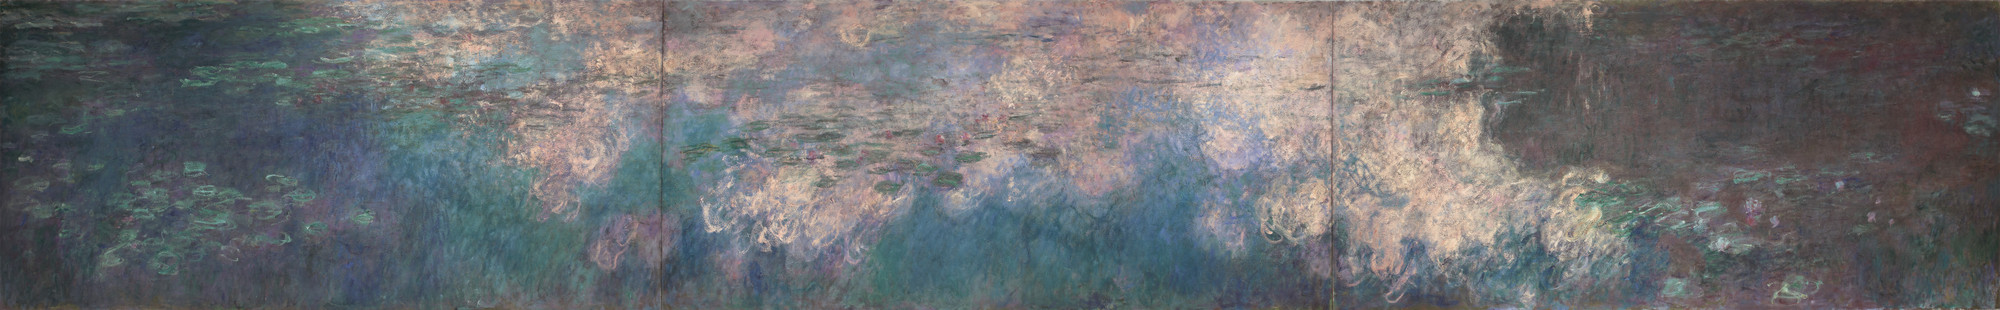 Claude Monet. Water Lilies. 1914-26